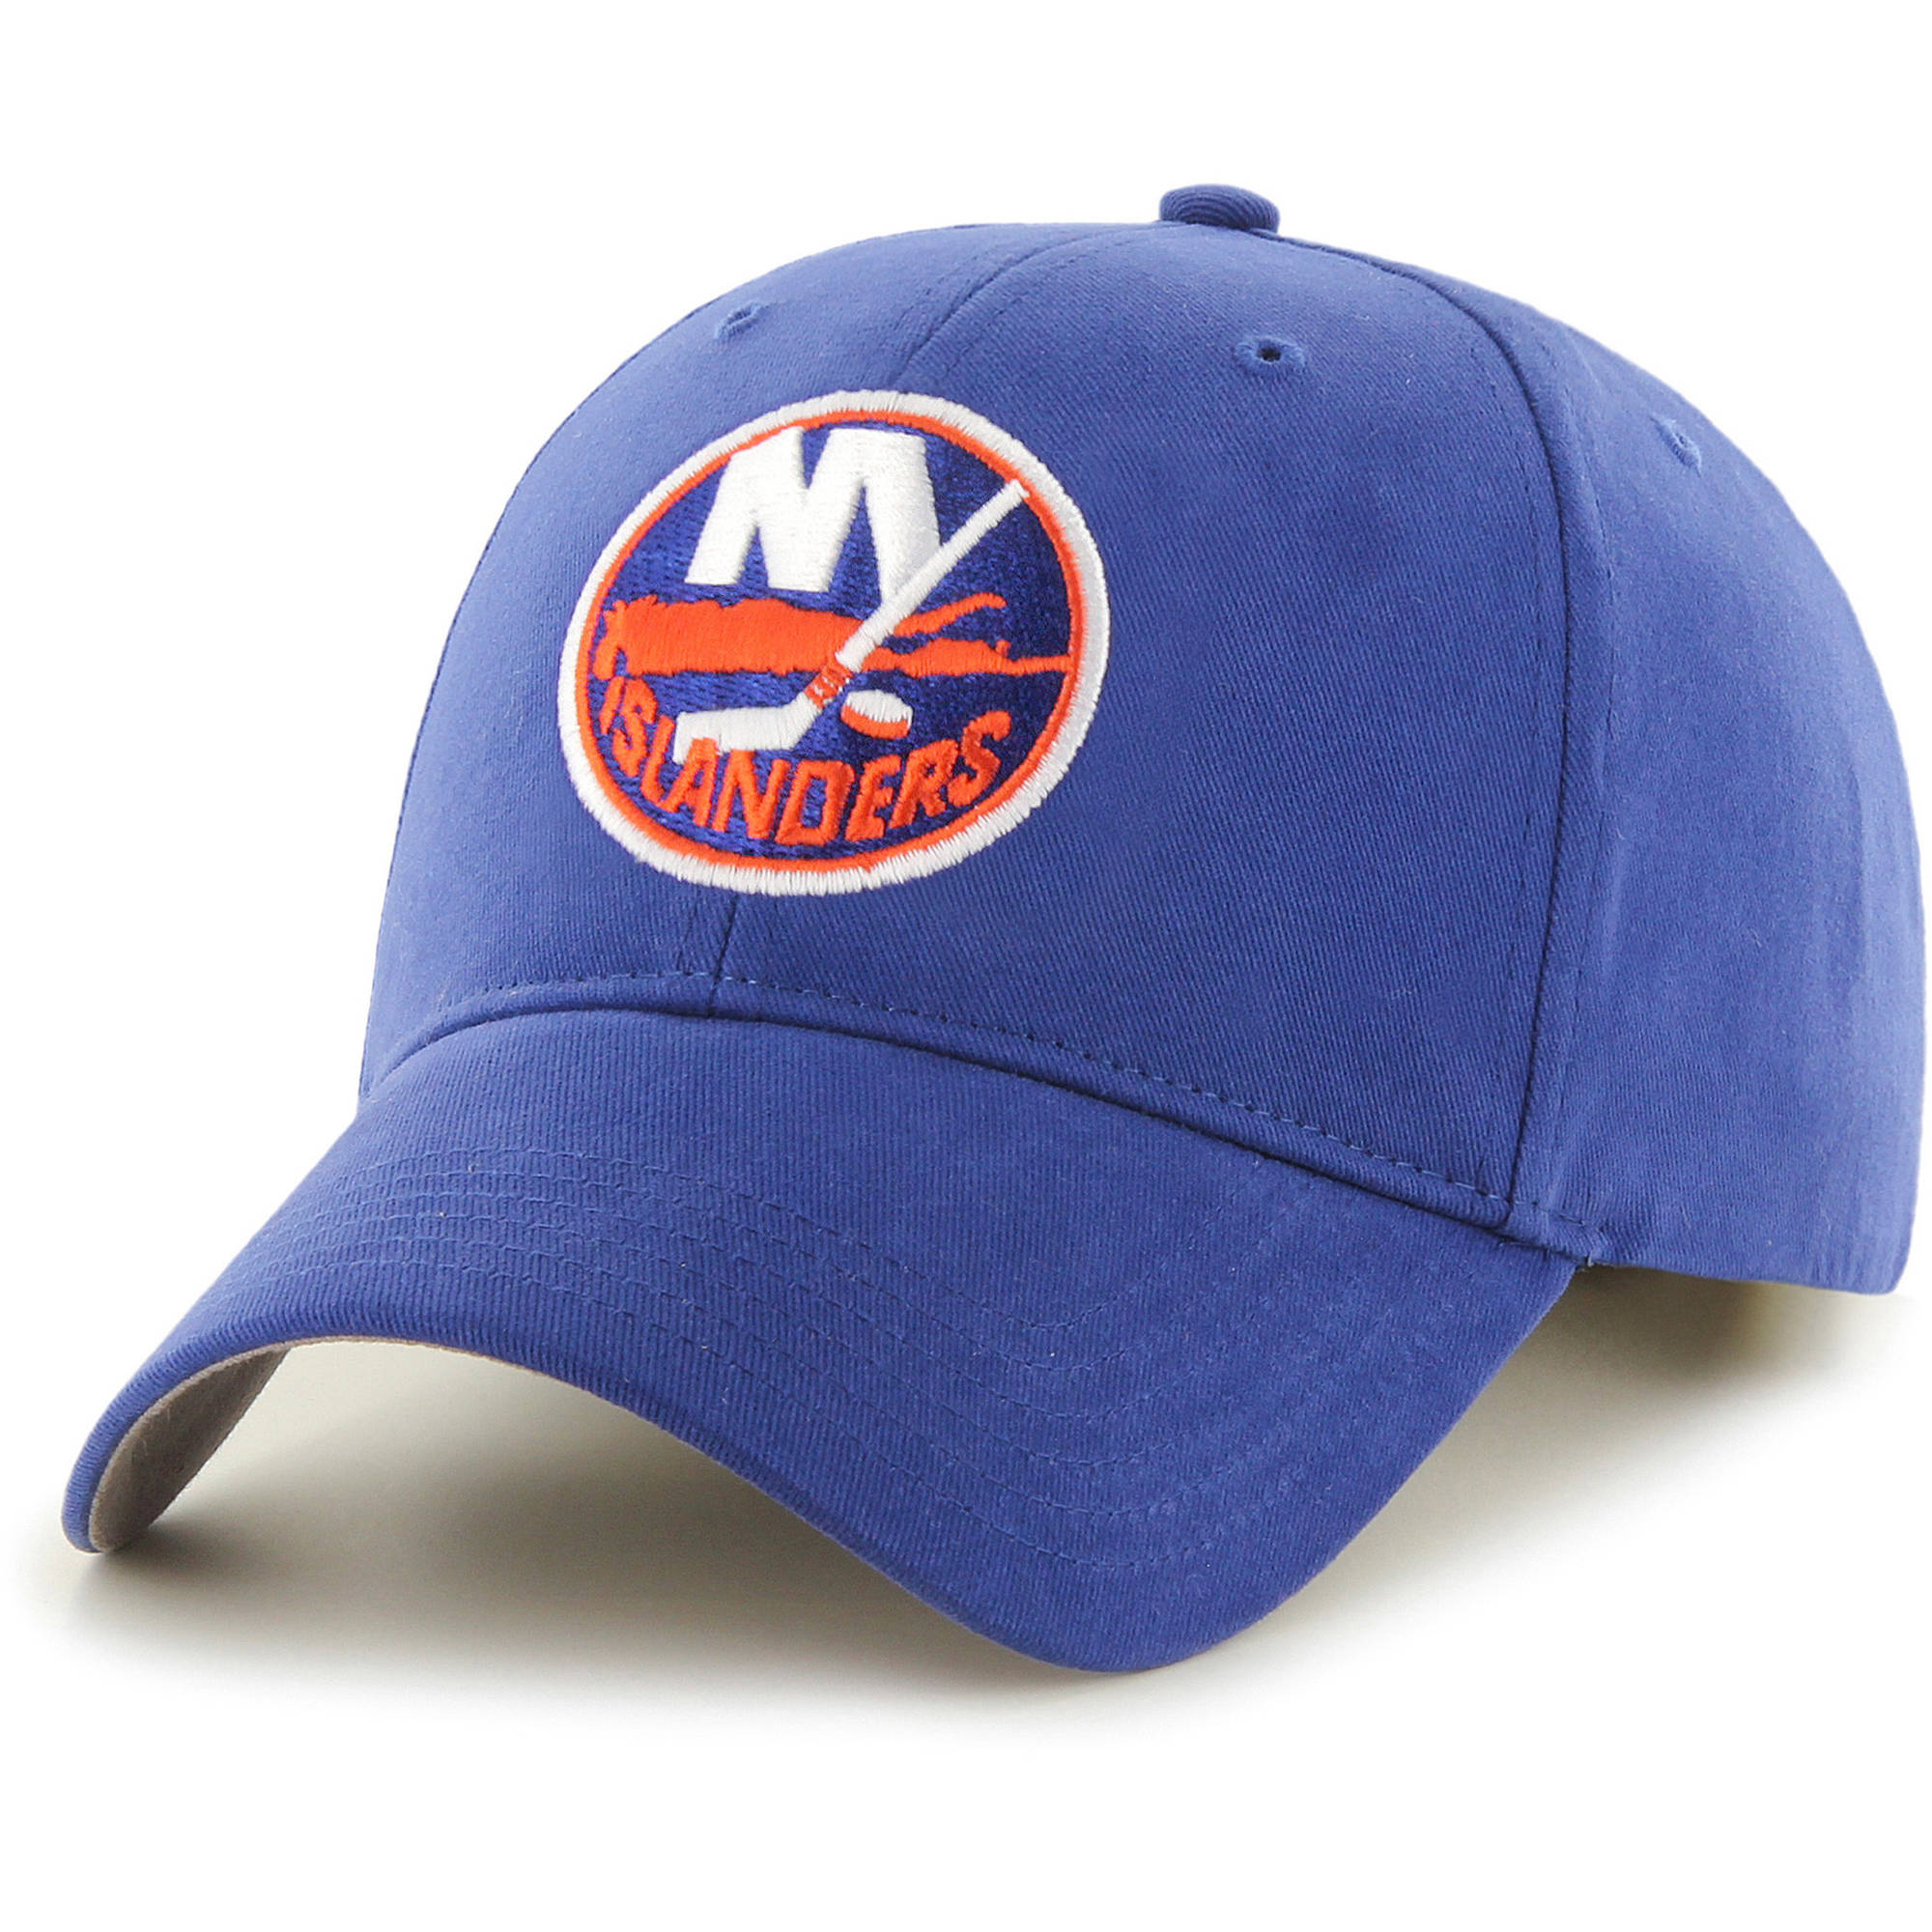 NHL New York Islanders Basic Cap / Hat by Fan Favorite